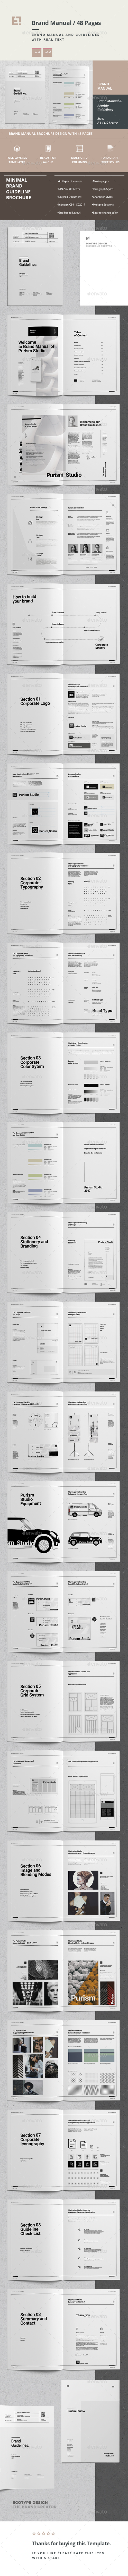 GraphicRiver Brand Manual 20872303